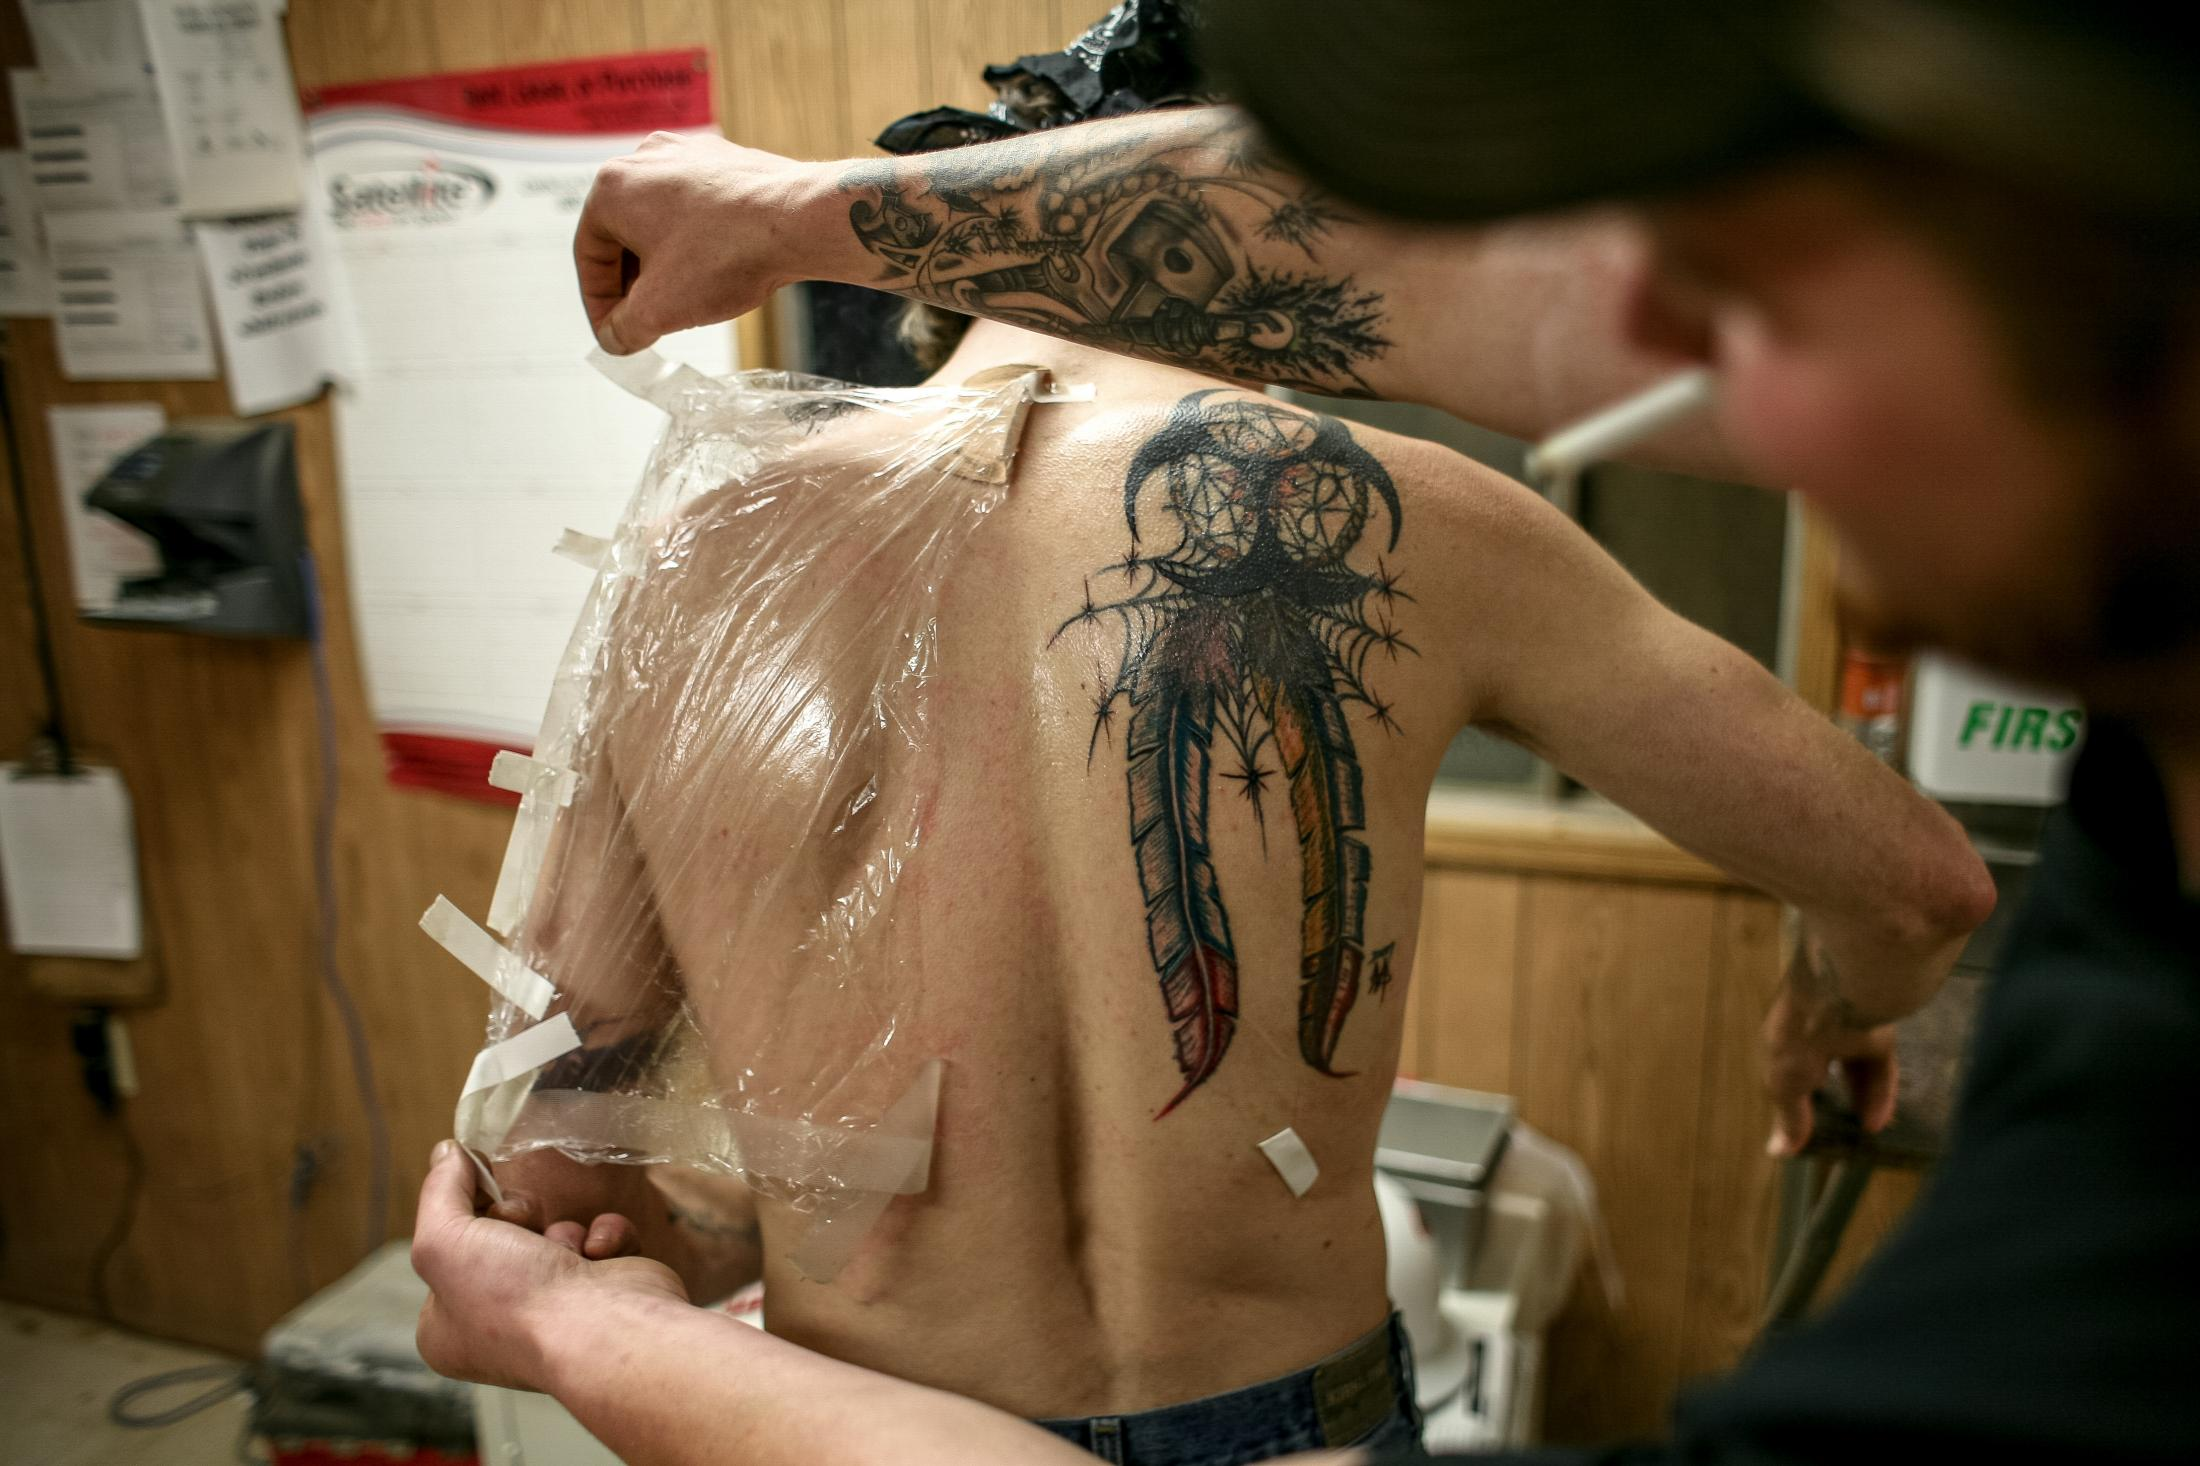 6/20/14- North Dakota - A man removes plastic wrap from a co-worker back, revealing a new tattoo he got in the oil field. Men in The Bakken find themselves discovering more than an opportunity; they discover a brotherhood between workers. The job is hard, the land is unforgiving, but the friendships are strong.